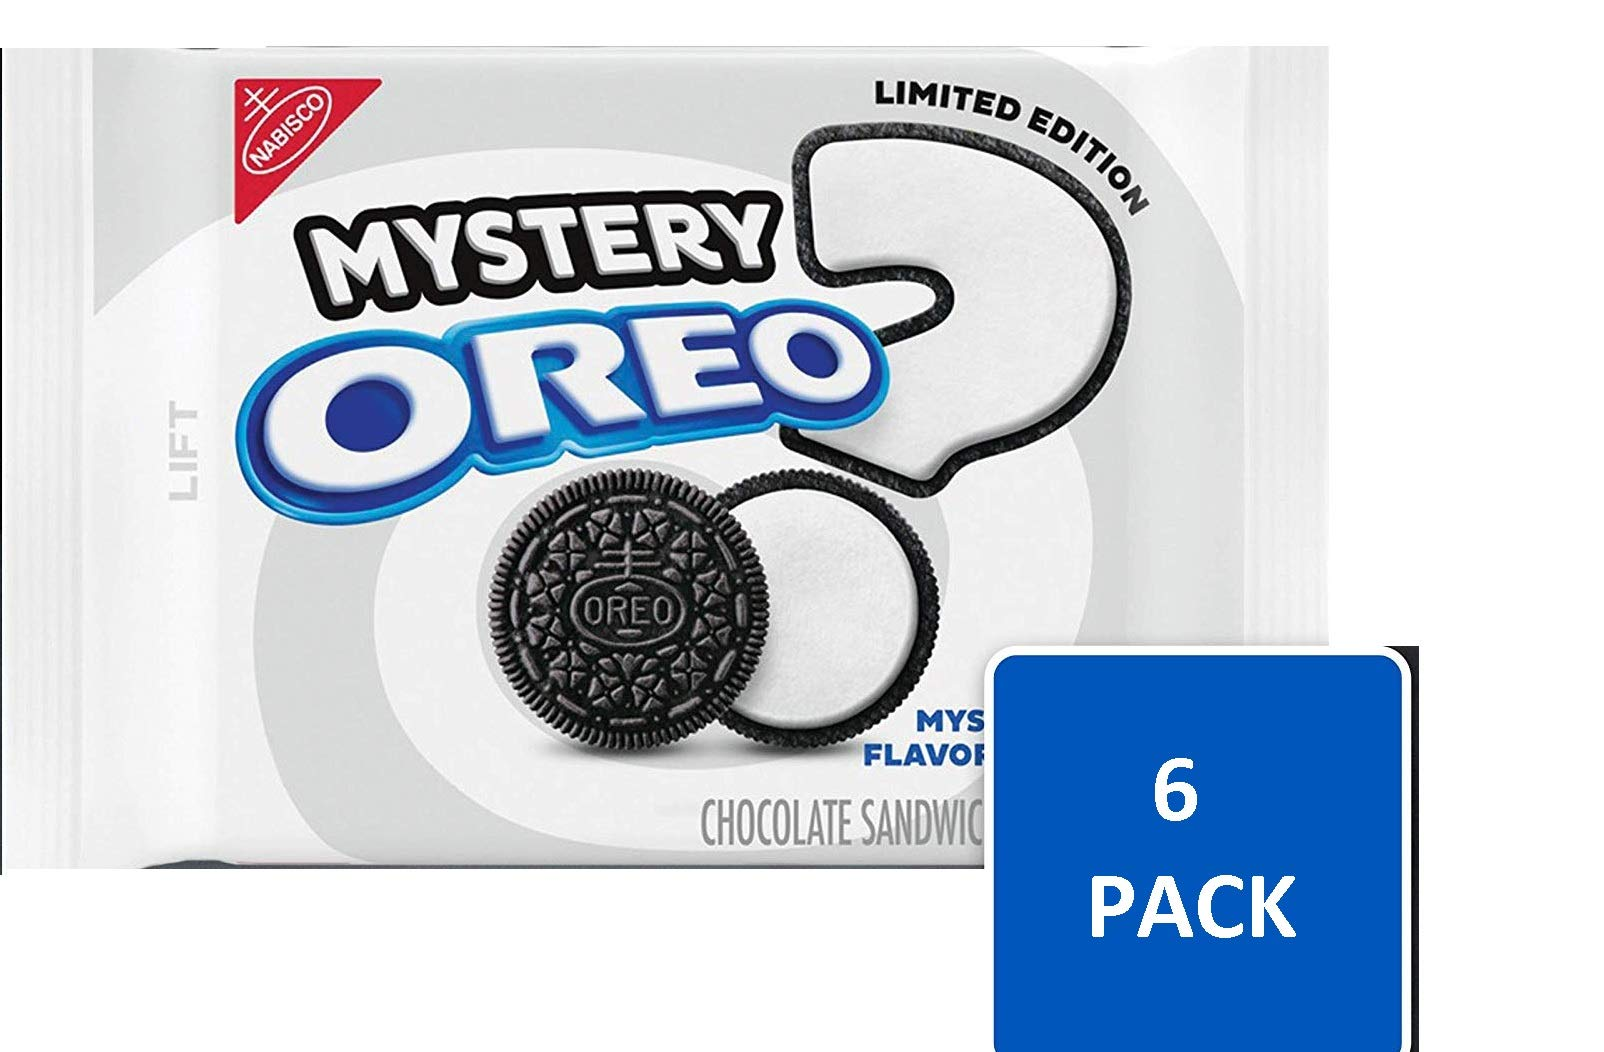 Oreo Cookies Chocolate Mystery Flavor Creme Limited Edition Sandwich Cookies (73.2 Oz - 6 Bags) by Oreo